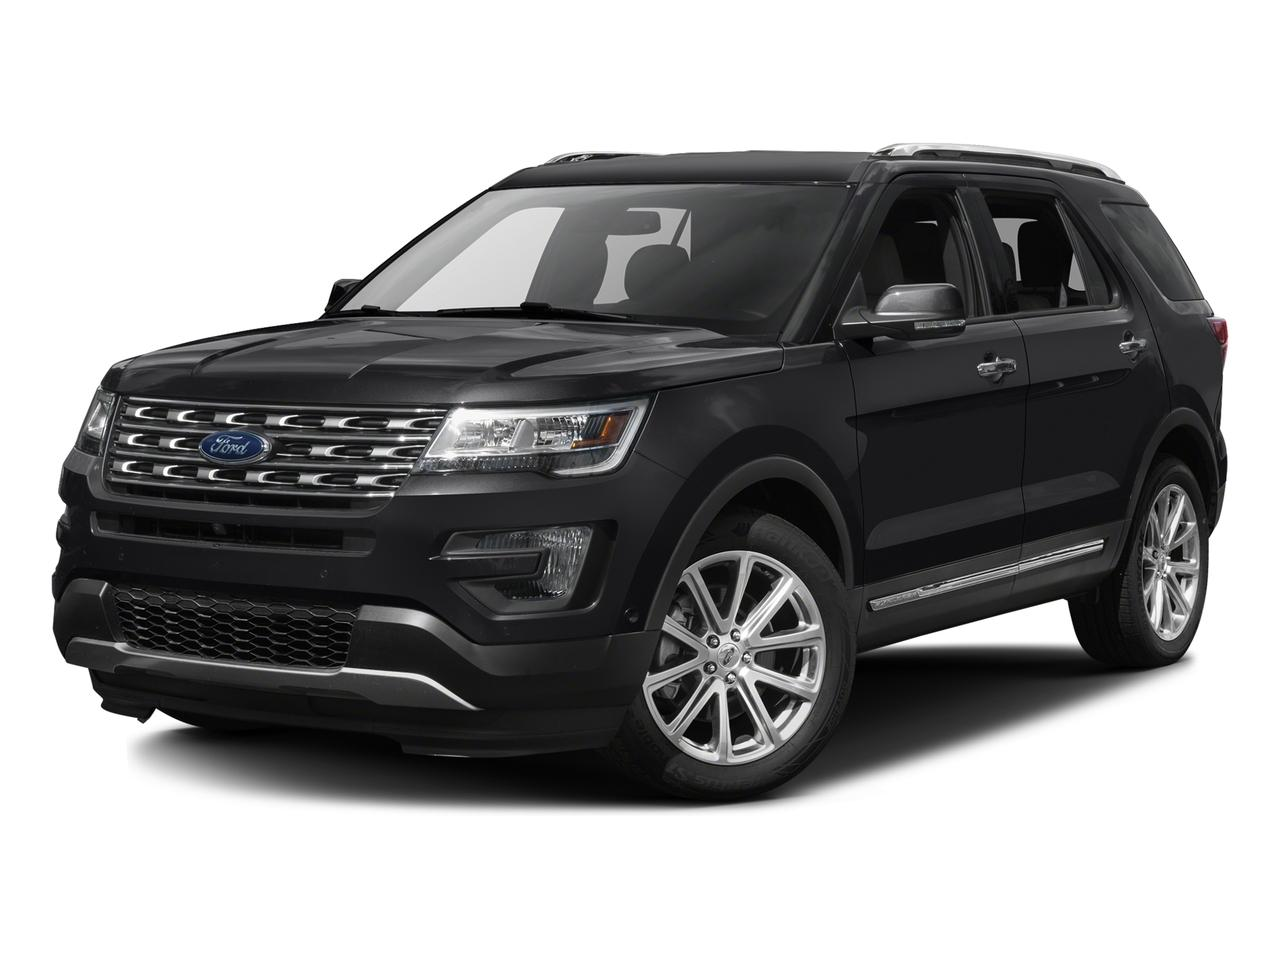 2016 Ford Explorer Vehicle Photo in Saginaw, MI 48609